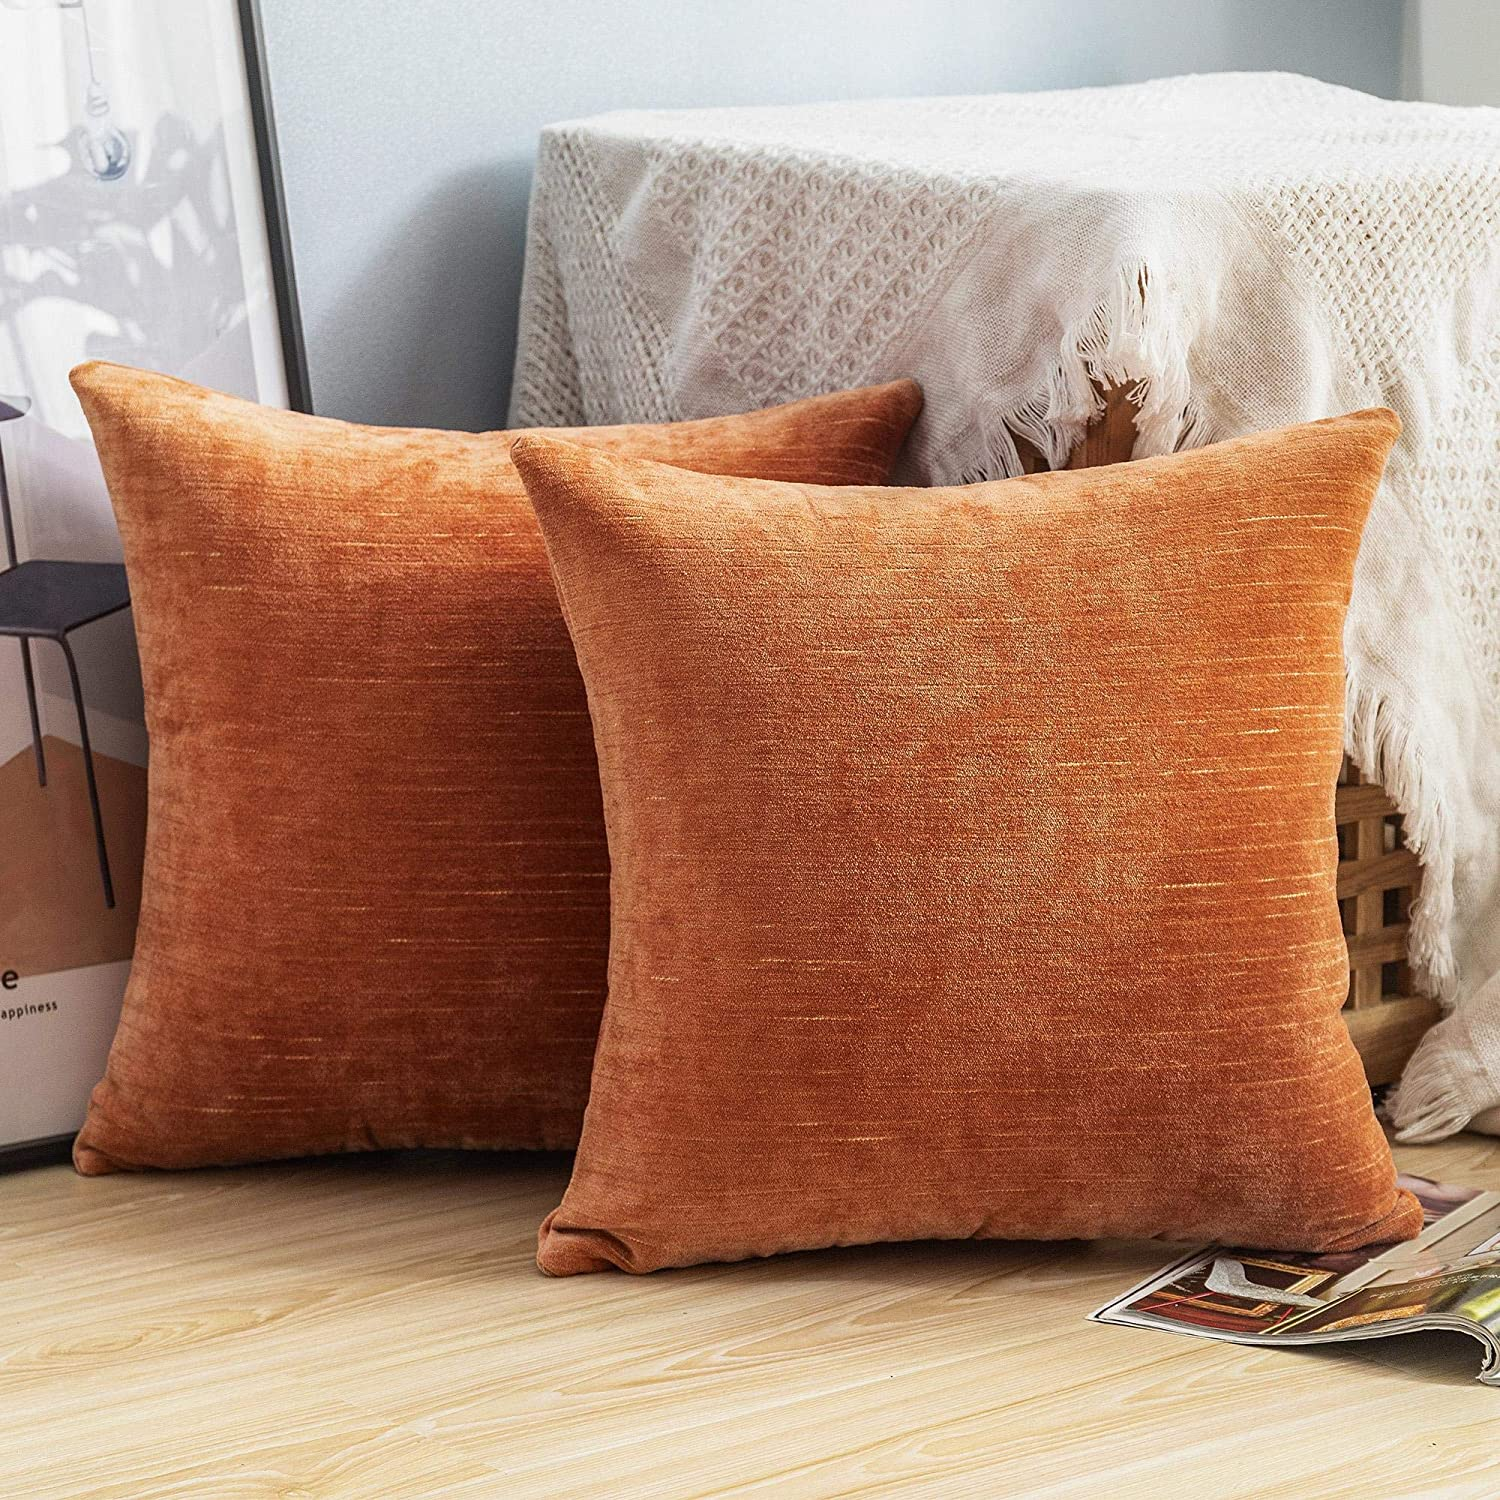 Lipo Thick Chenille Pillow Covers 20x20- Set of 2 Decorative Euro Throw Pillows Cover, Soft Cushion Case, Home Decor Rustic Farmhouse for Couch, Bed, Sofa, Bedroom, Car (Orange, 20X20 Inch)